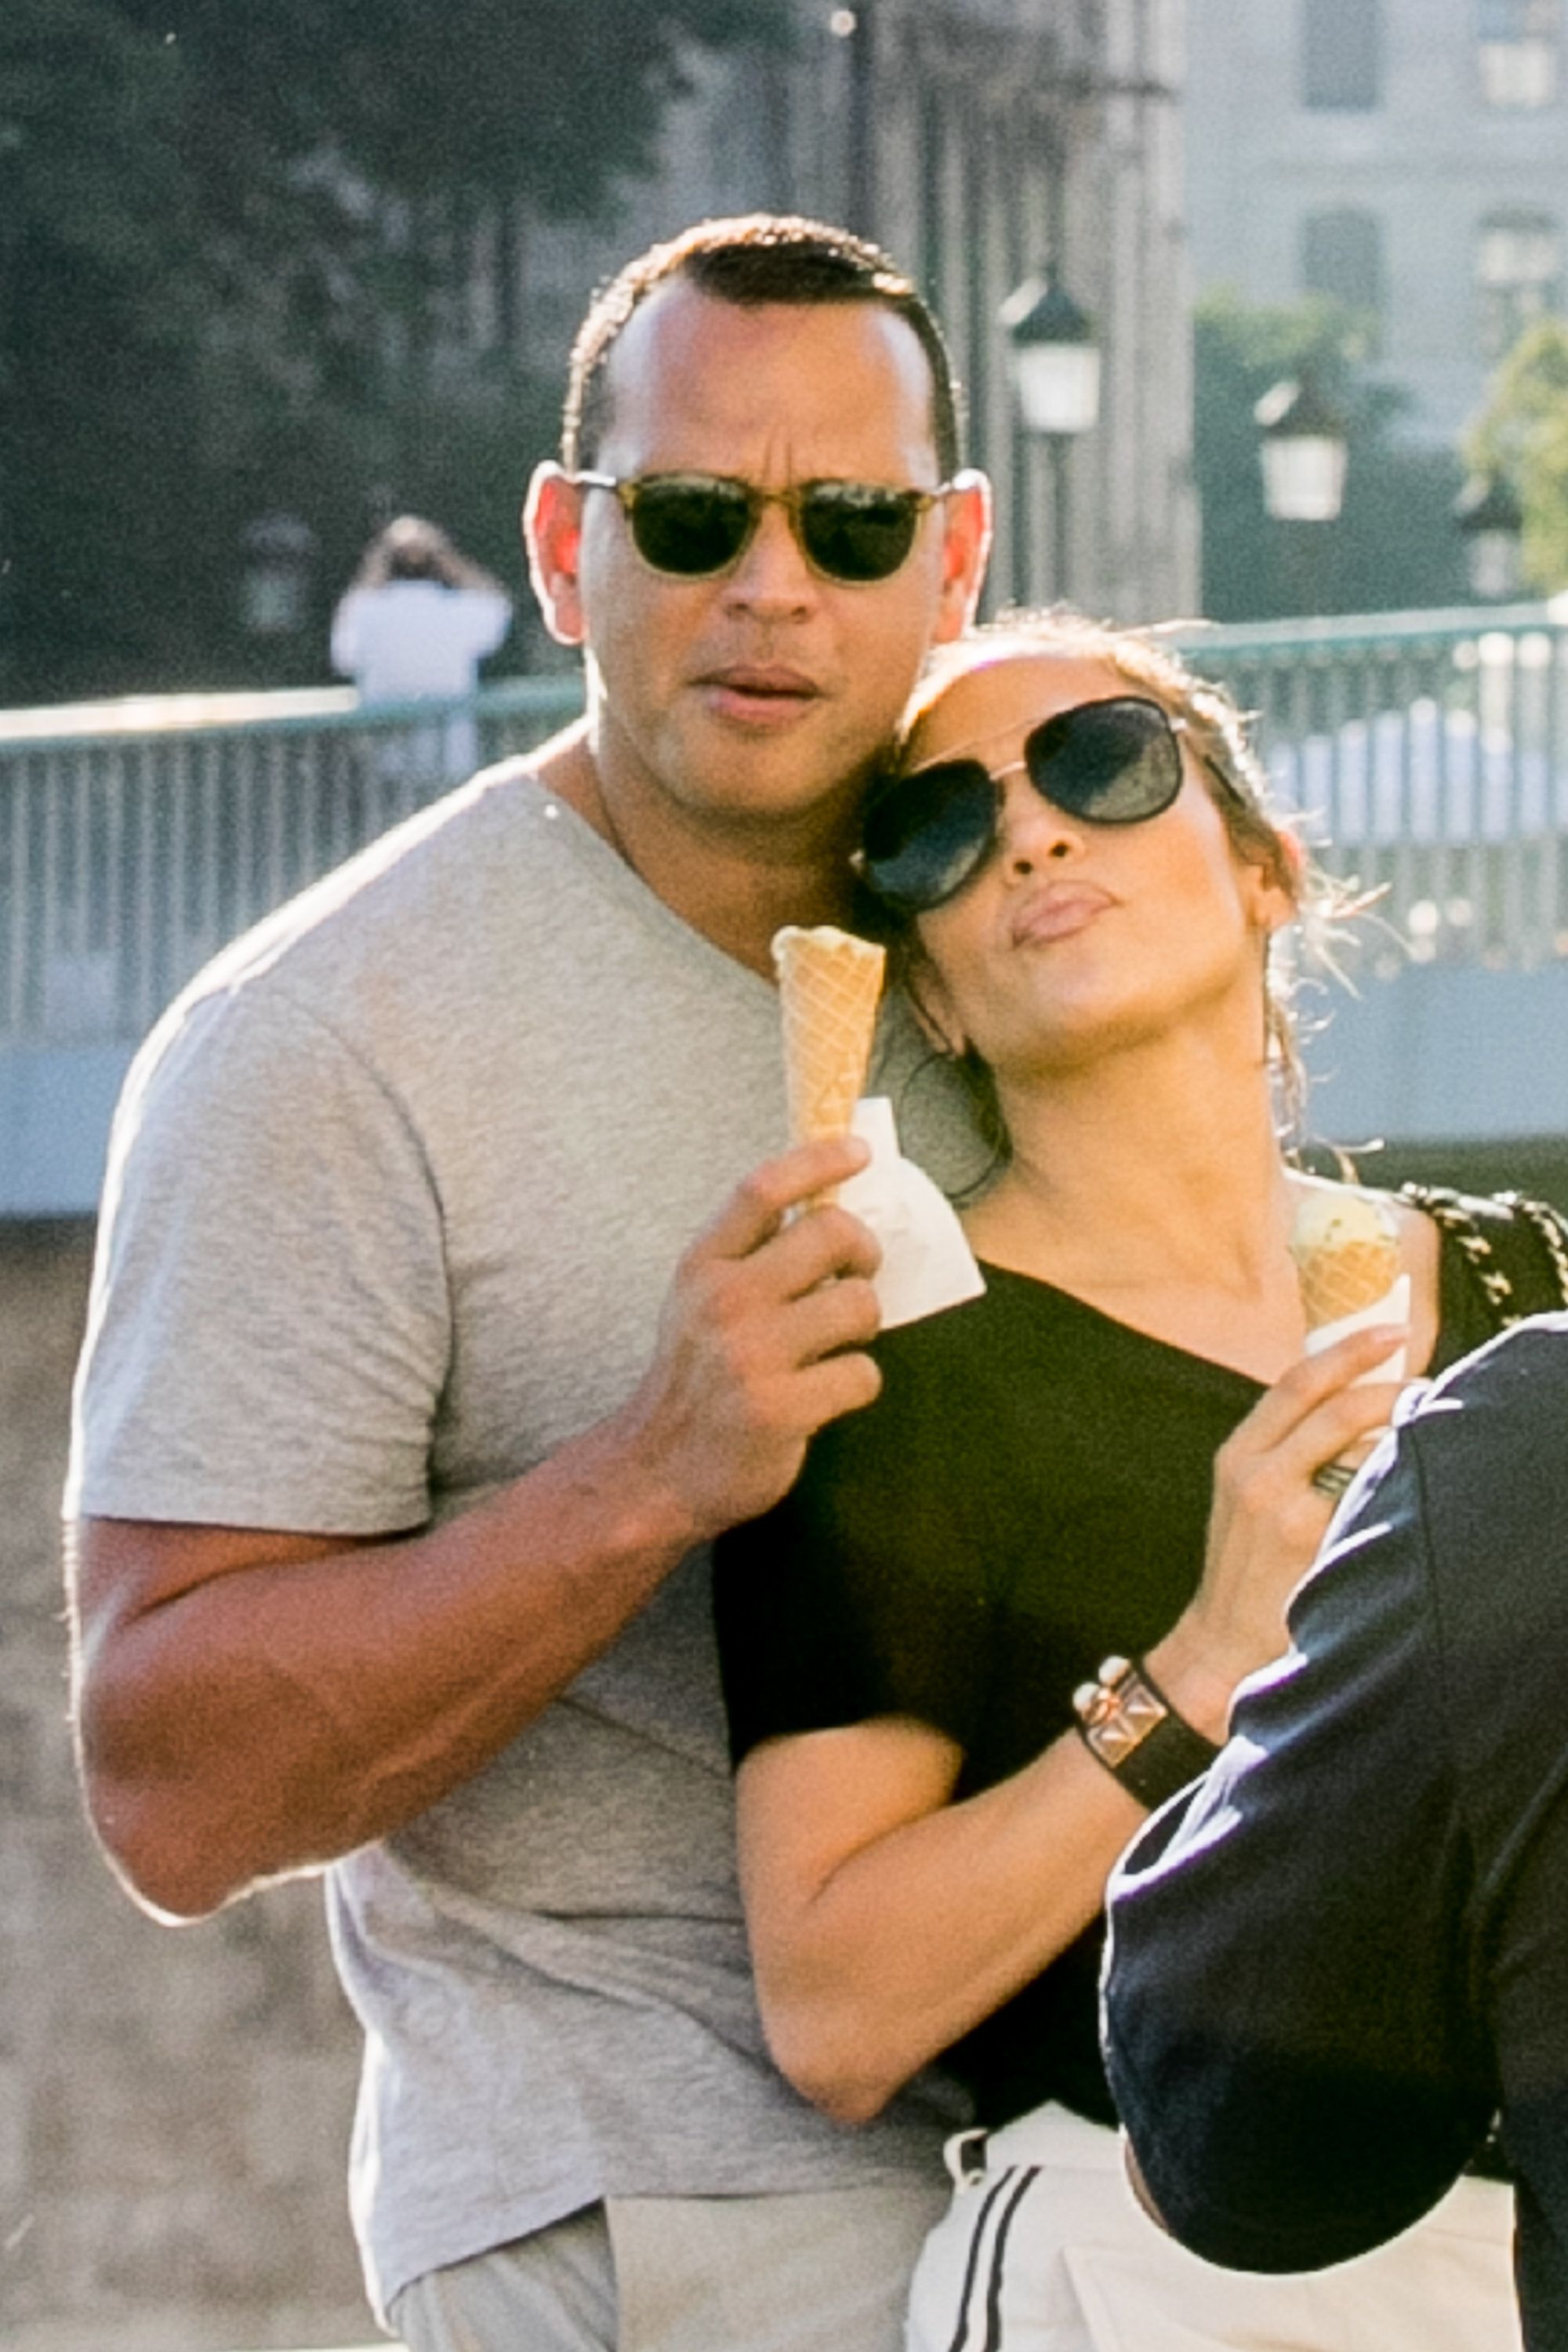 PARIS, FRANCE - JUNE 18:  (L-R) Alex Rodriguez and Jennifer Lopez are sighted on the 'Ile Saint Louis' near Notre-Dame-De-Paris cathedral on June 18, 2017 in Paris, France.  (Photo by Marc Piasecki/GC Images)